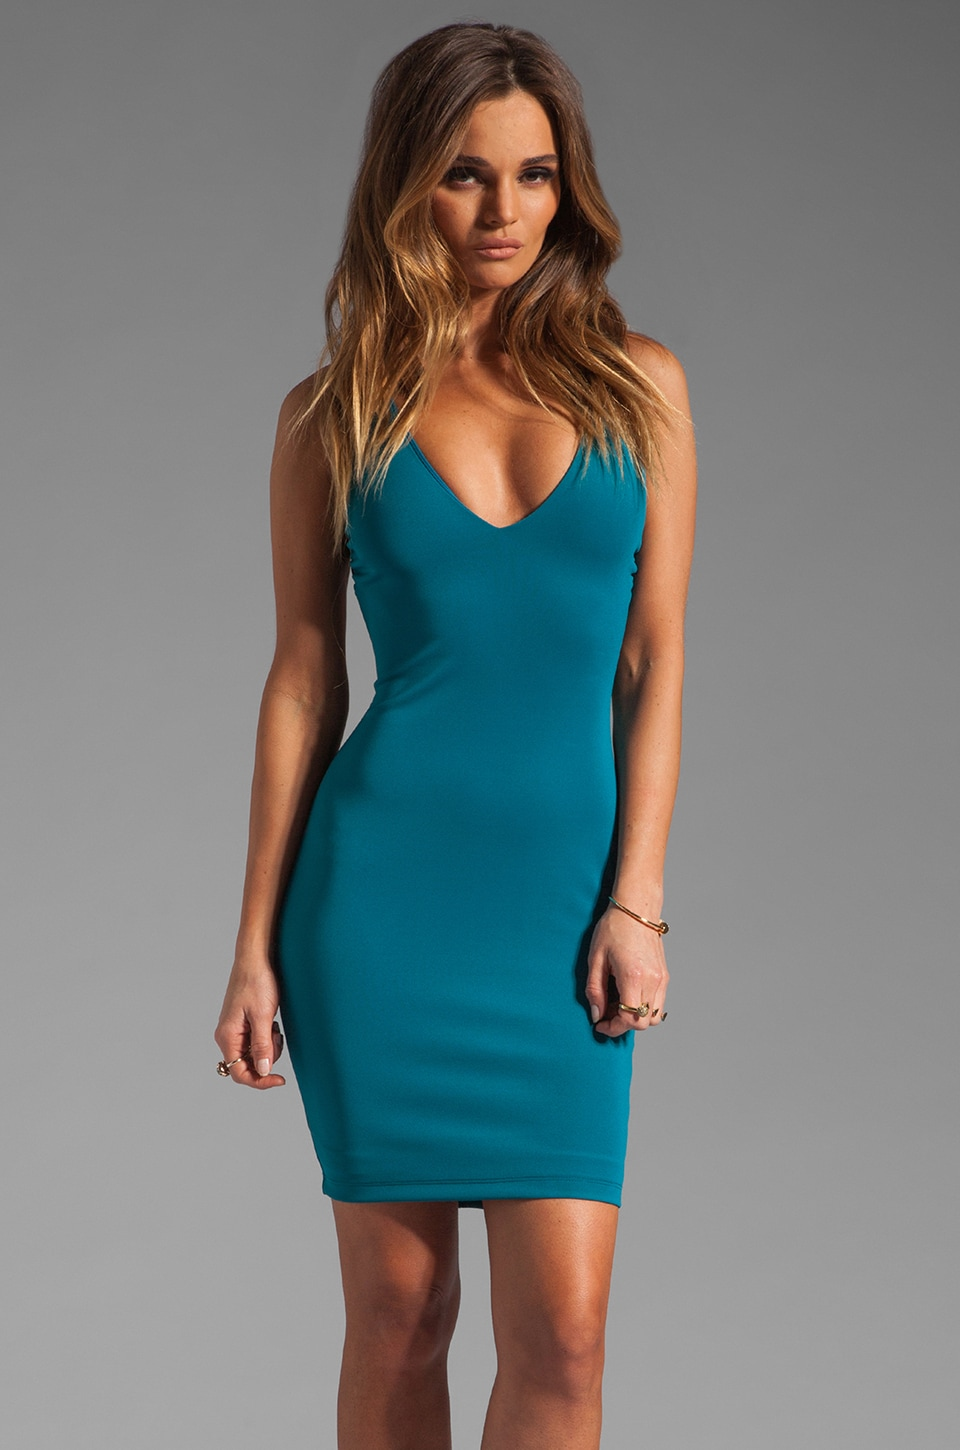 Boulee Bria Dress in Teal